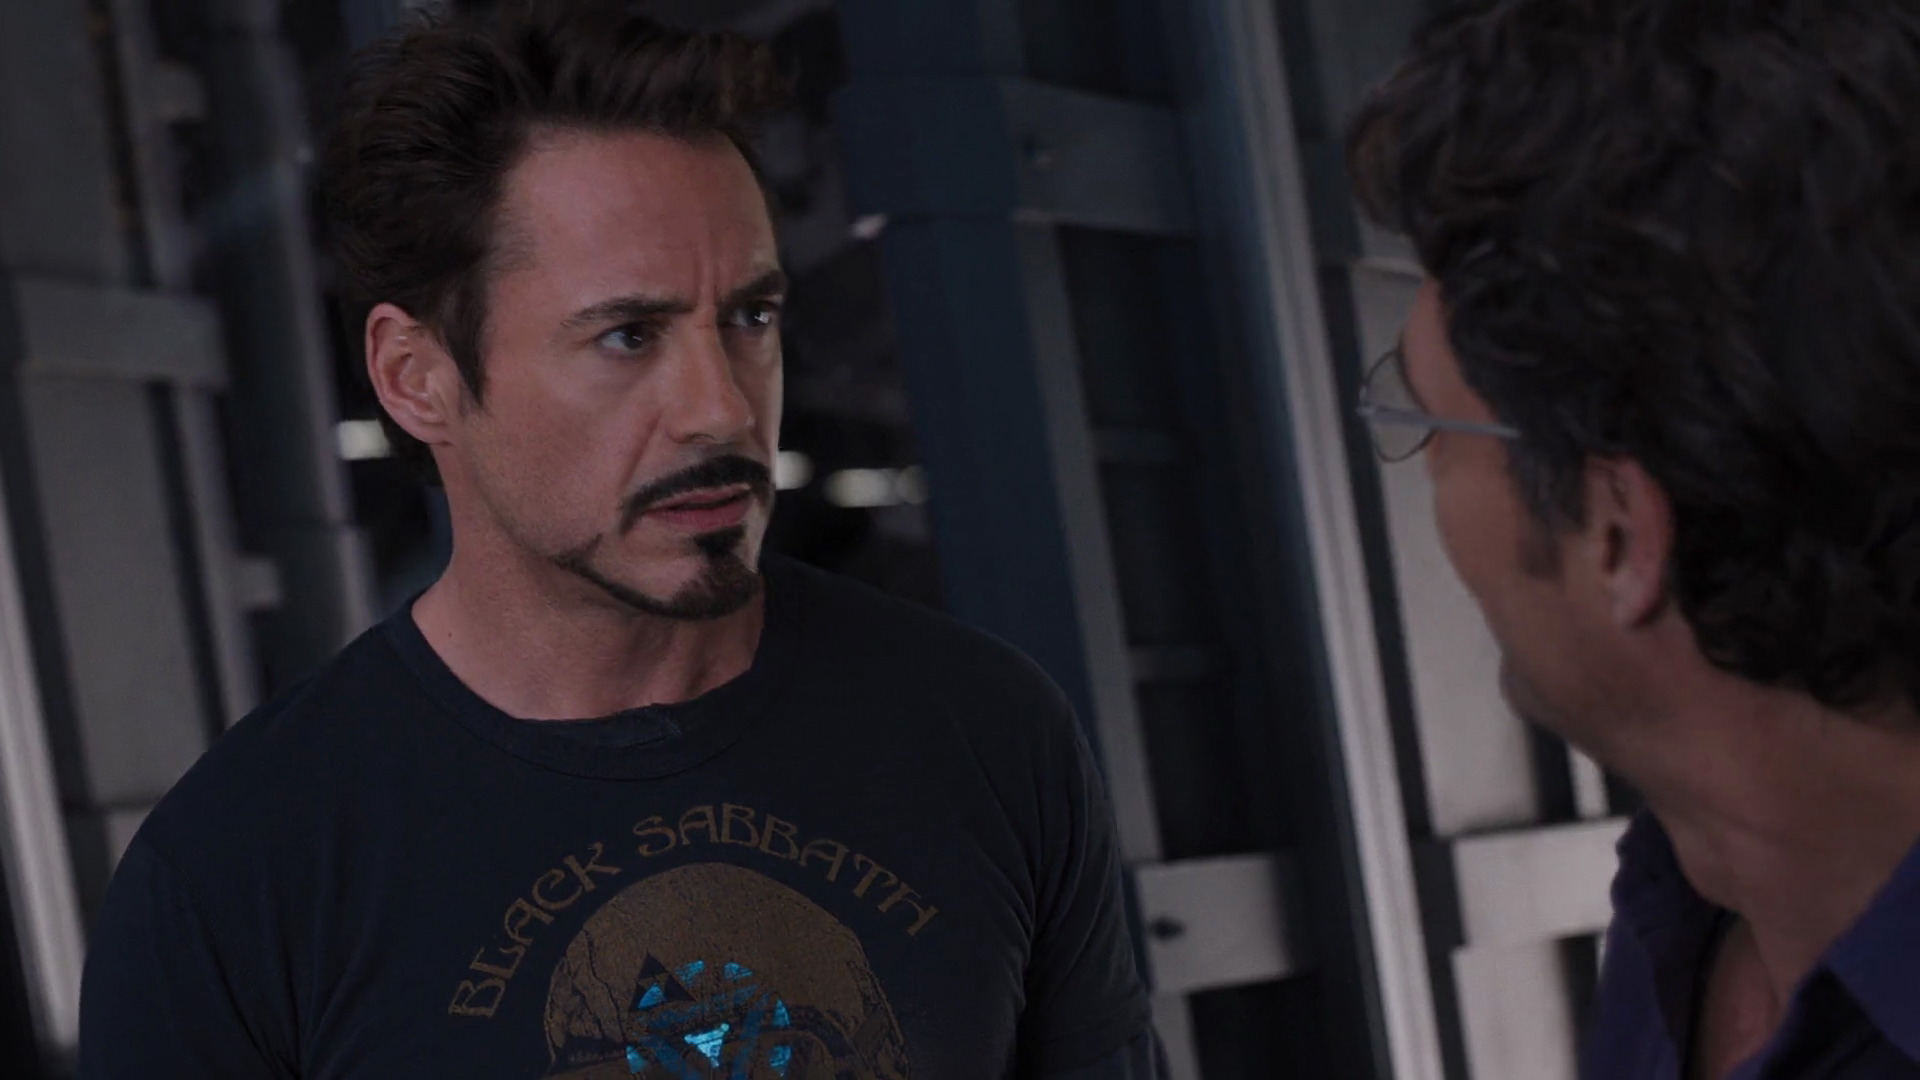 http://www.caps.media/201/2-avengers/full/avengers-movie-screencaps.com-6679.jpg